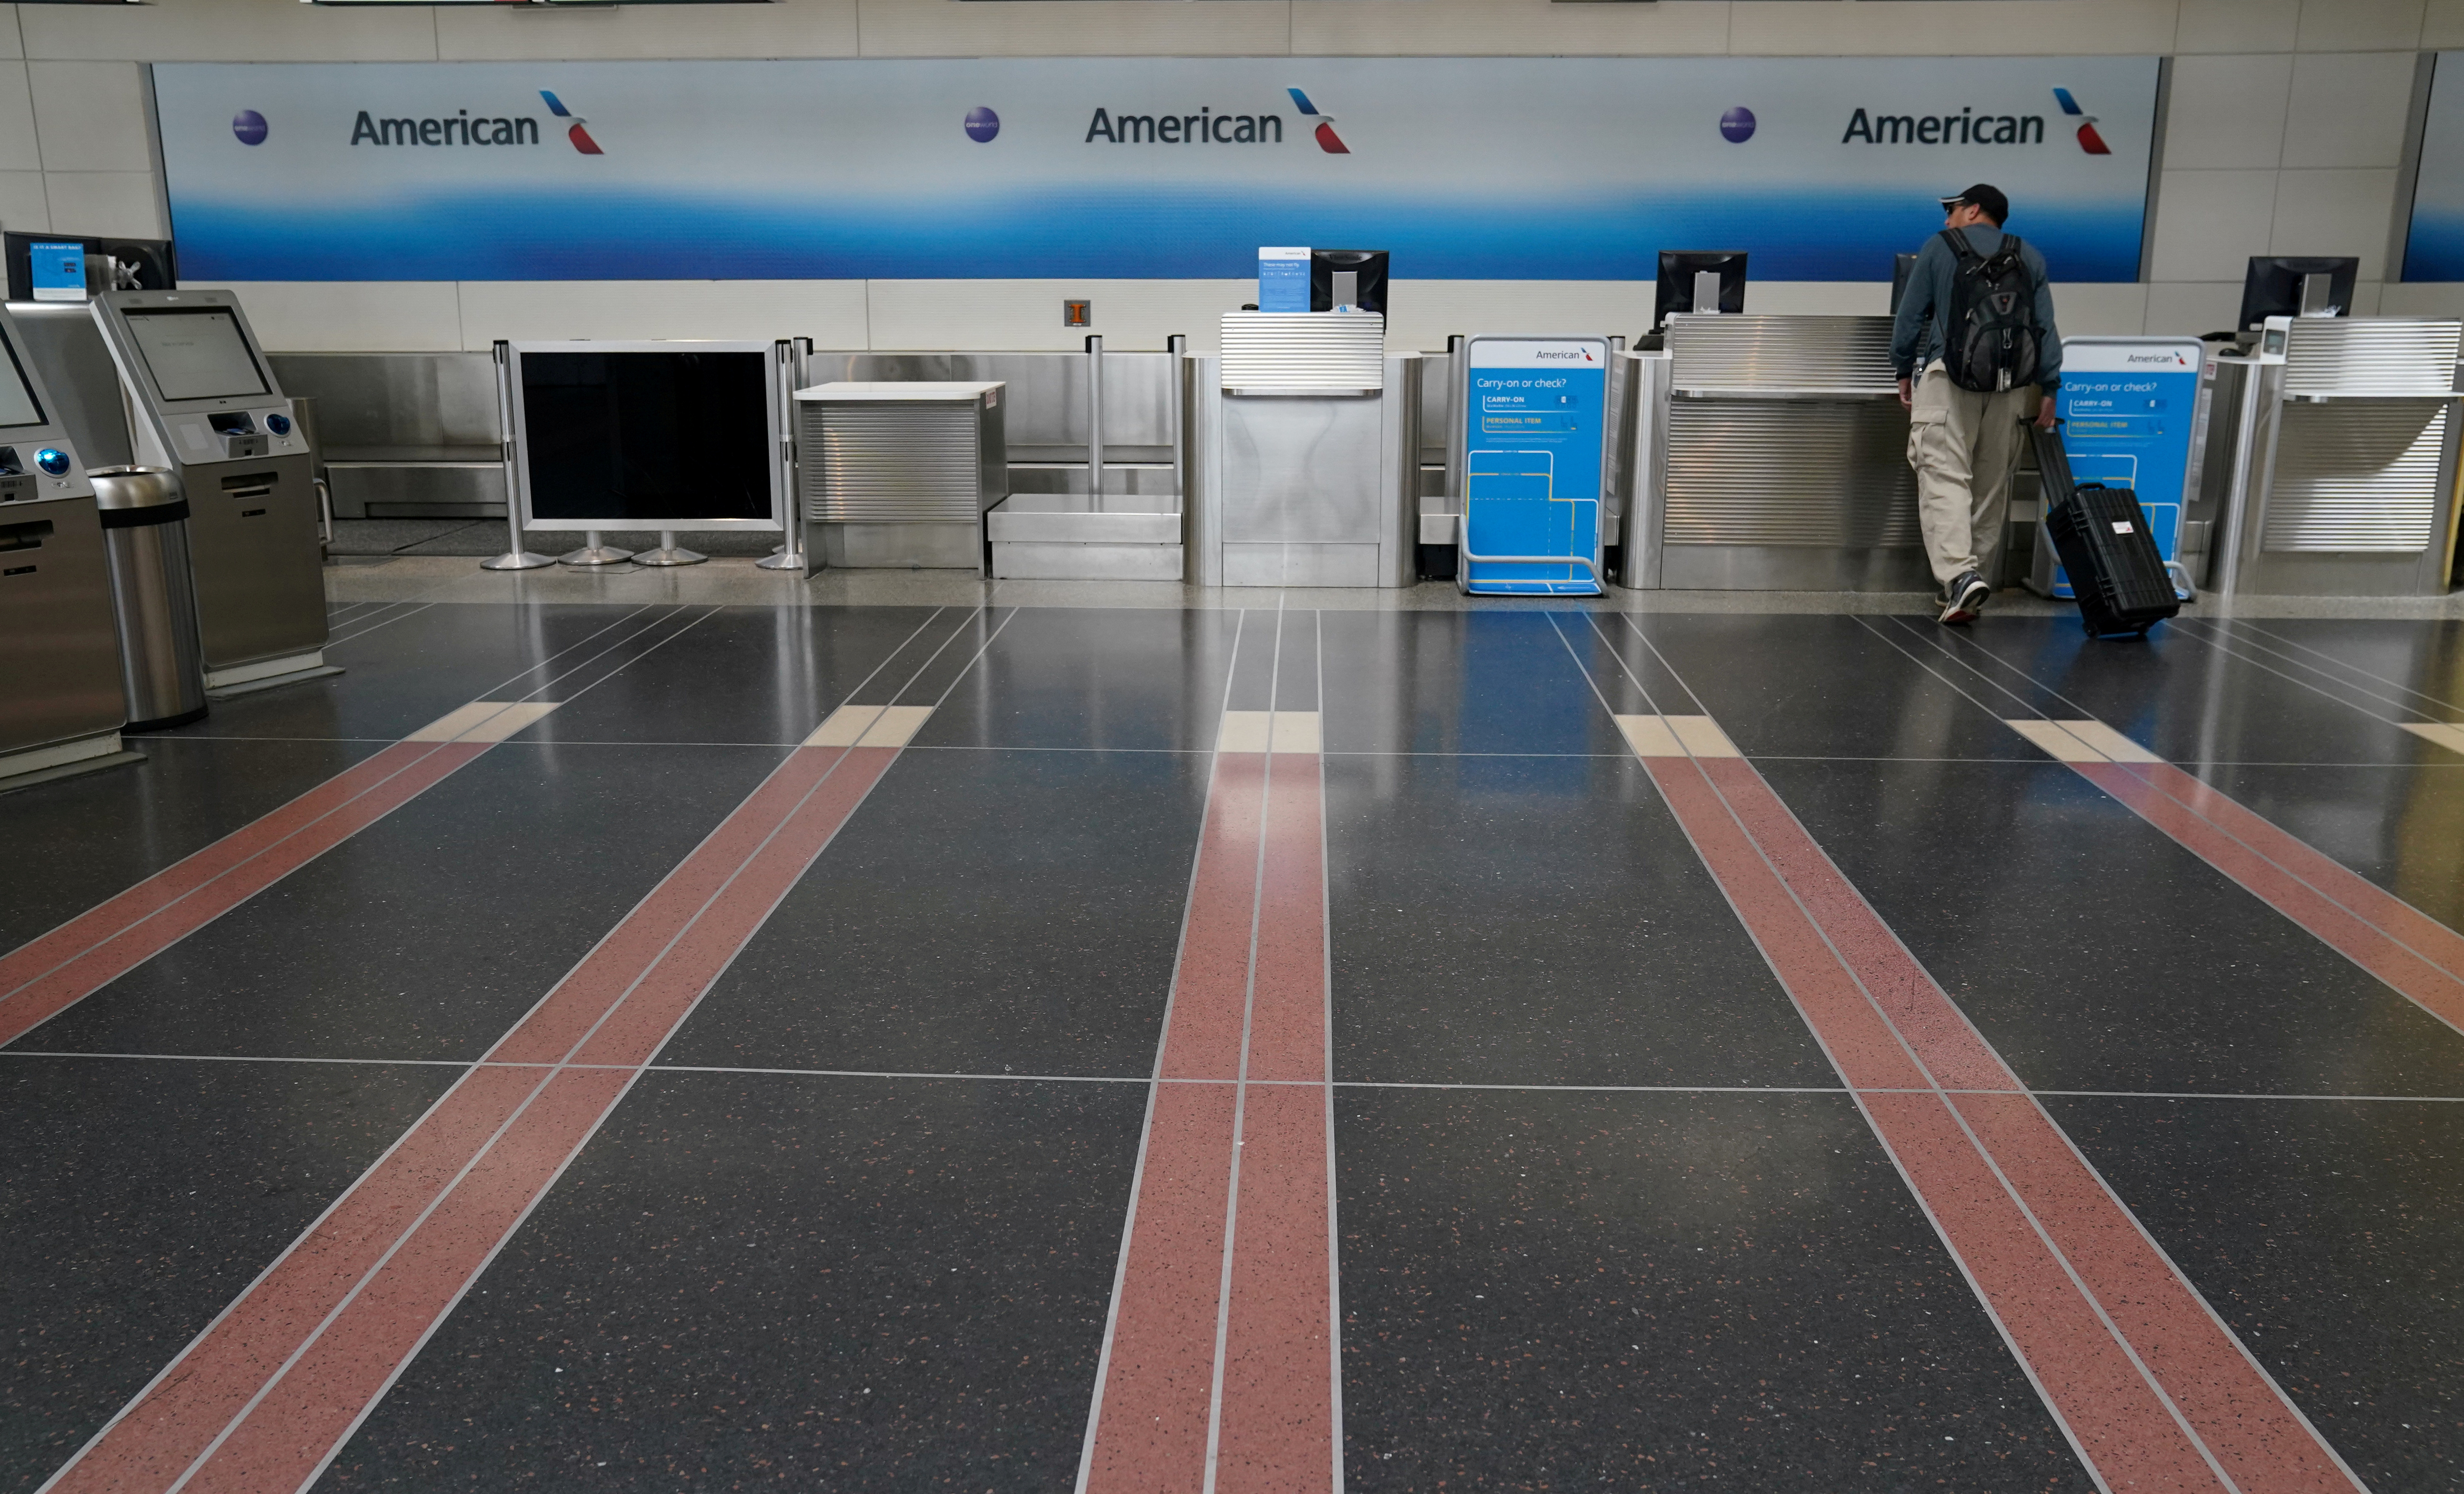 A lone customer seeks assistance at an American Airlines check-in counter at Washington